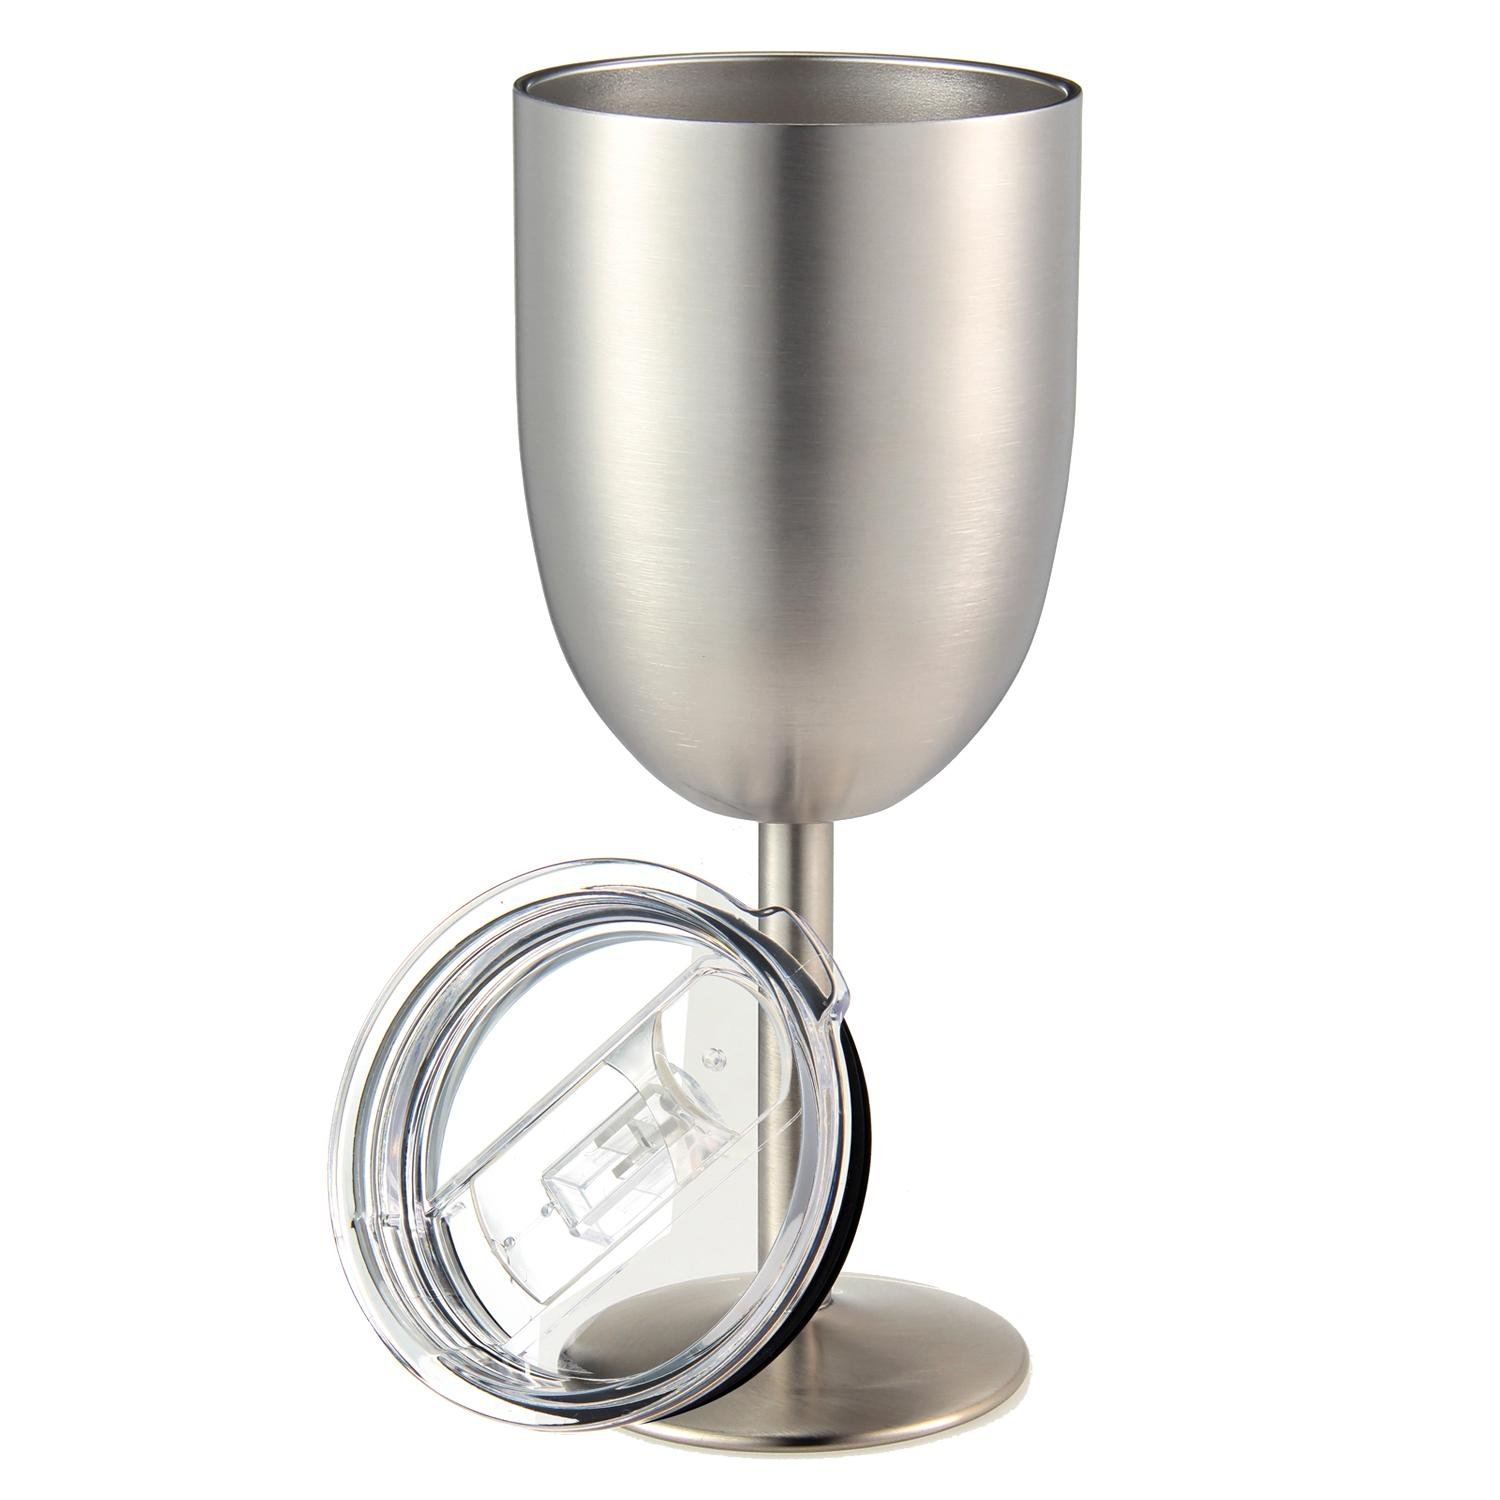 Pawaca Stainless Steel Wine Glasses, 10oz Double Wall Vacuum Sealed Stainless Steel Wine Goblet with Leak Resistant Lid for Daily, Camping and Picnic